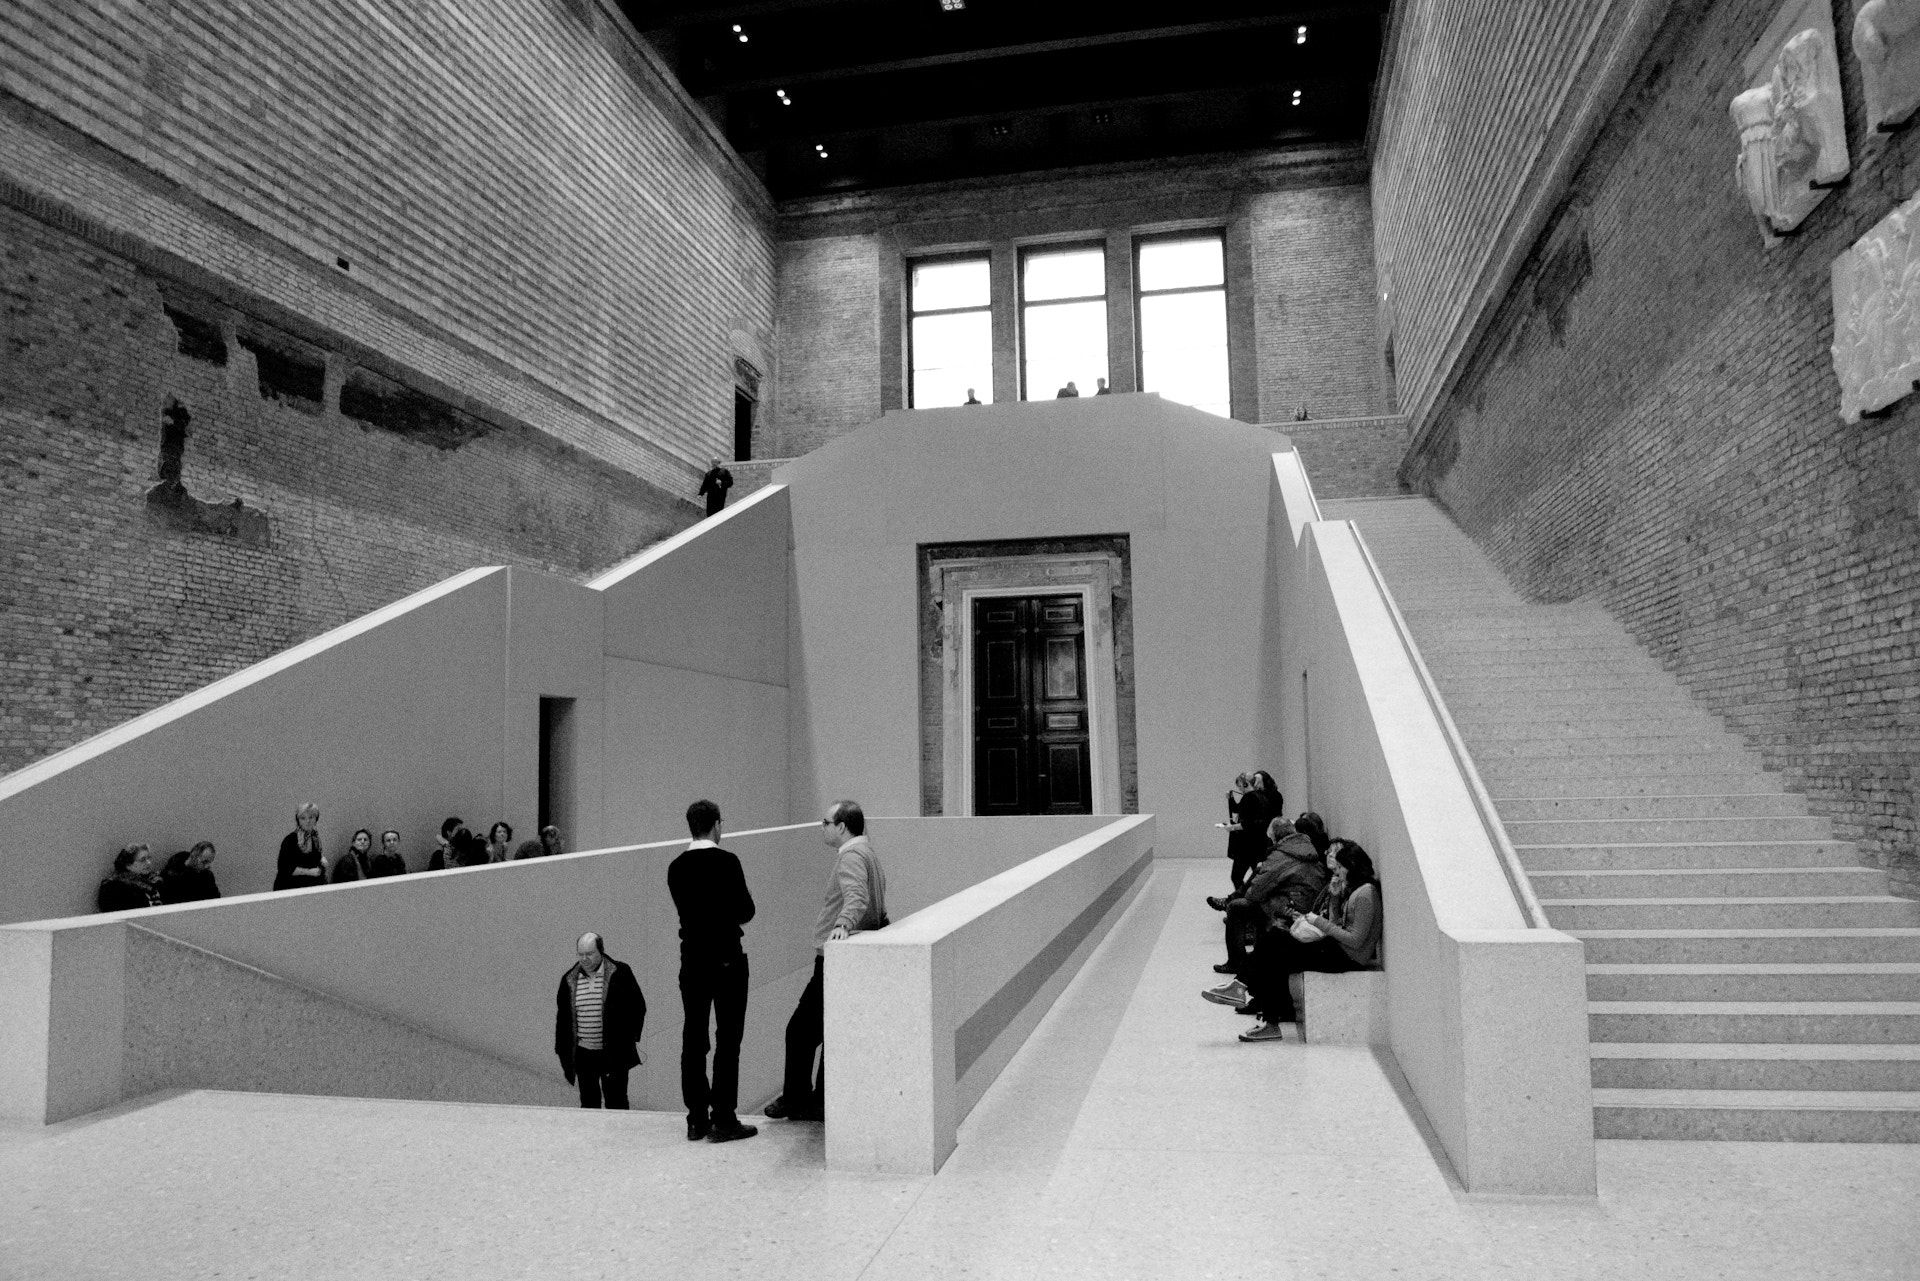 Photograph Berlin, Neues Museum by Thomas Roessler on 500px